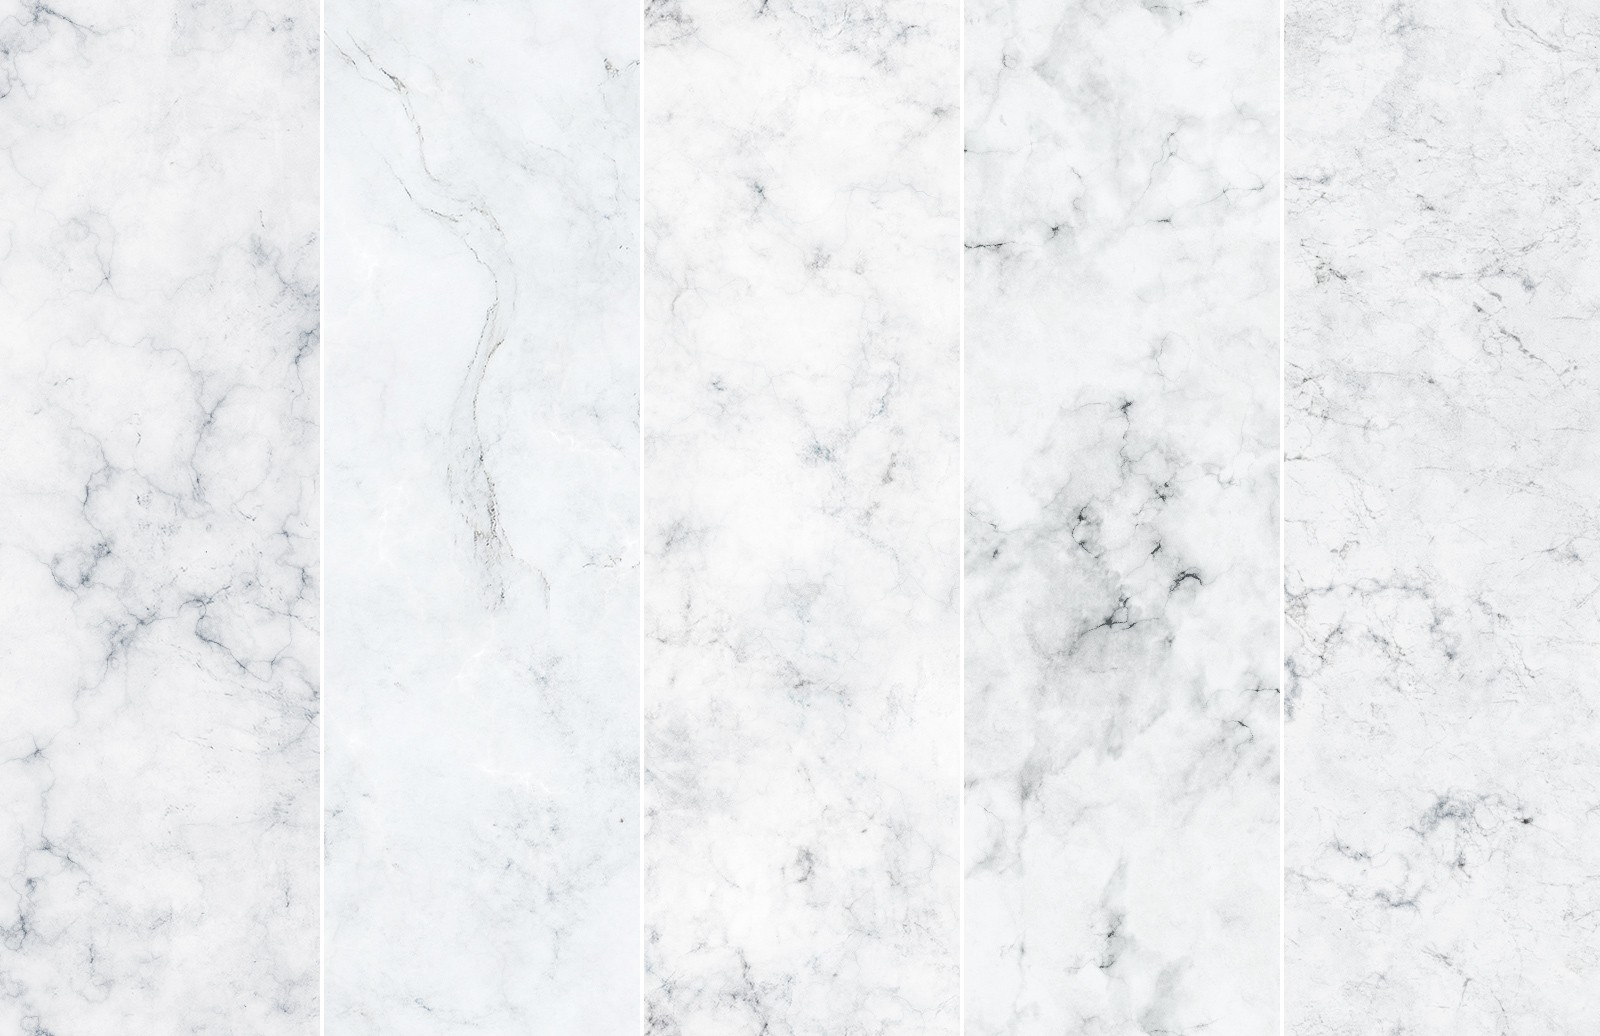 White Marble Seamless Textures Preview 2